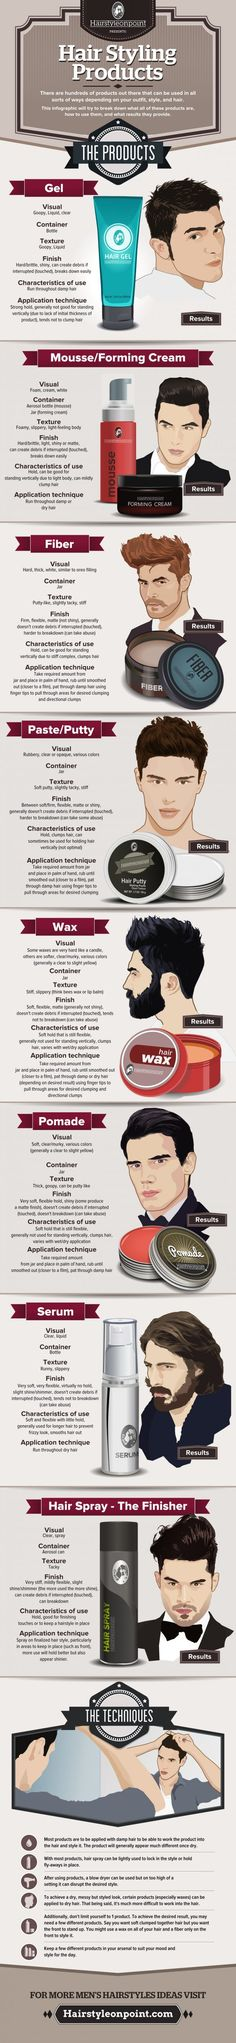 Mens Hair Styling Products